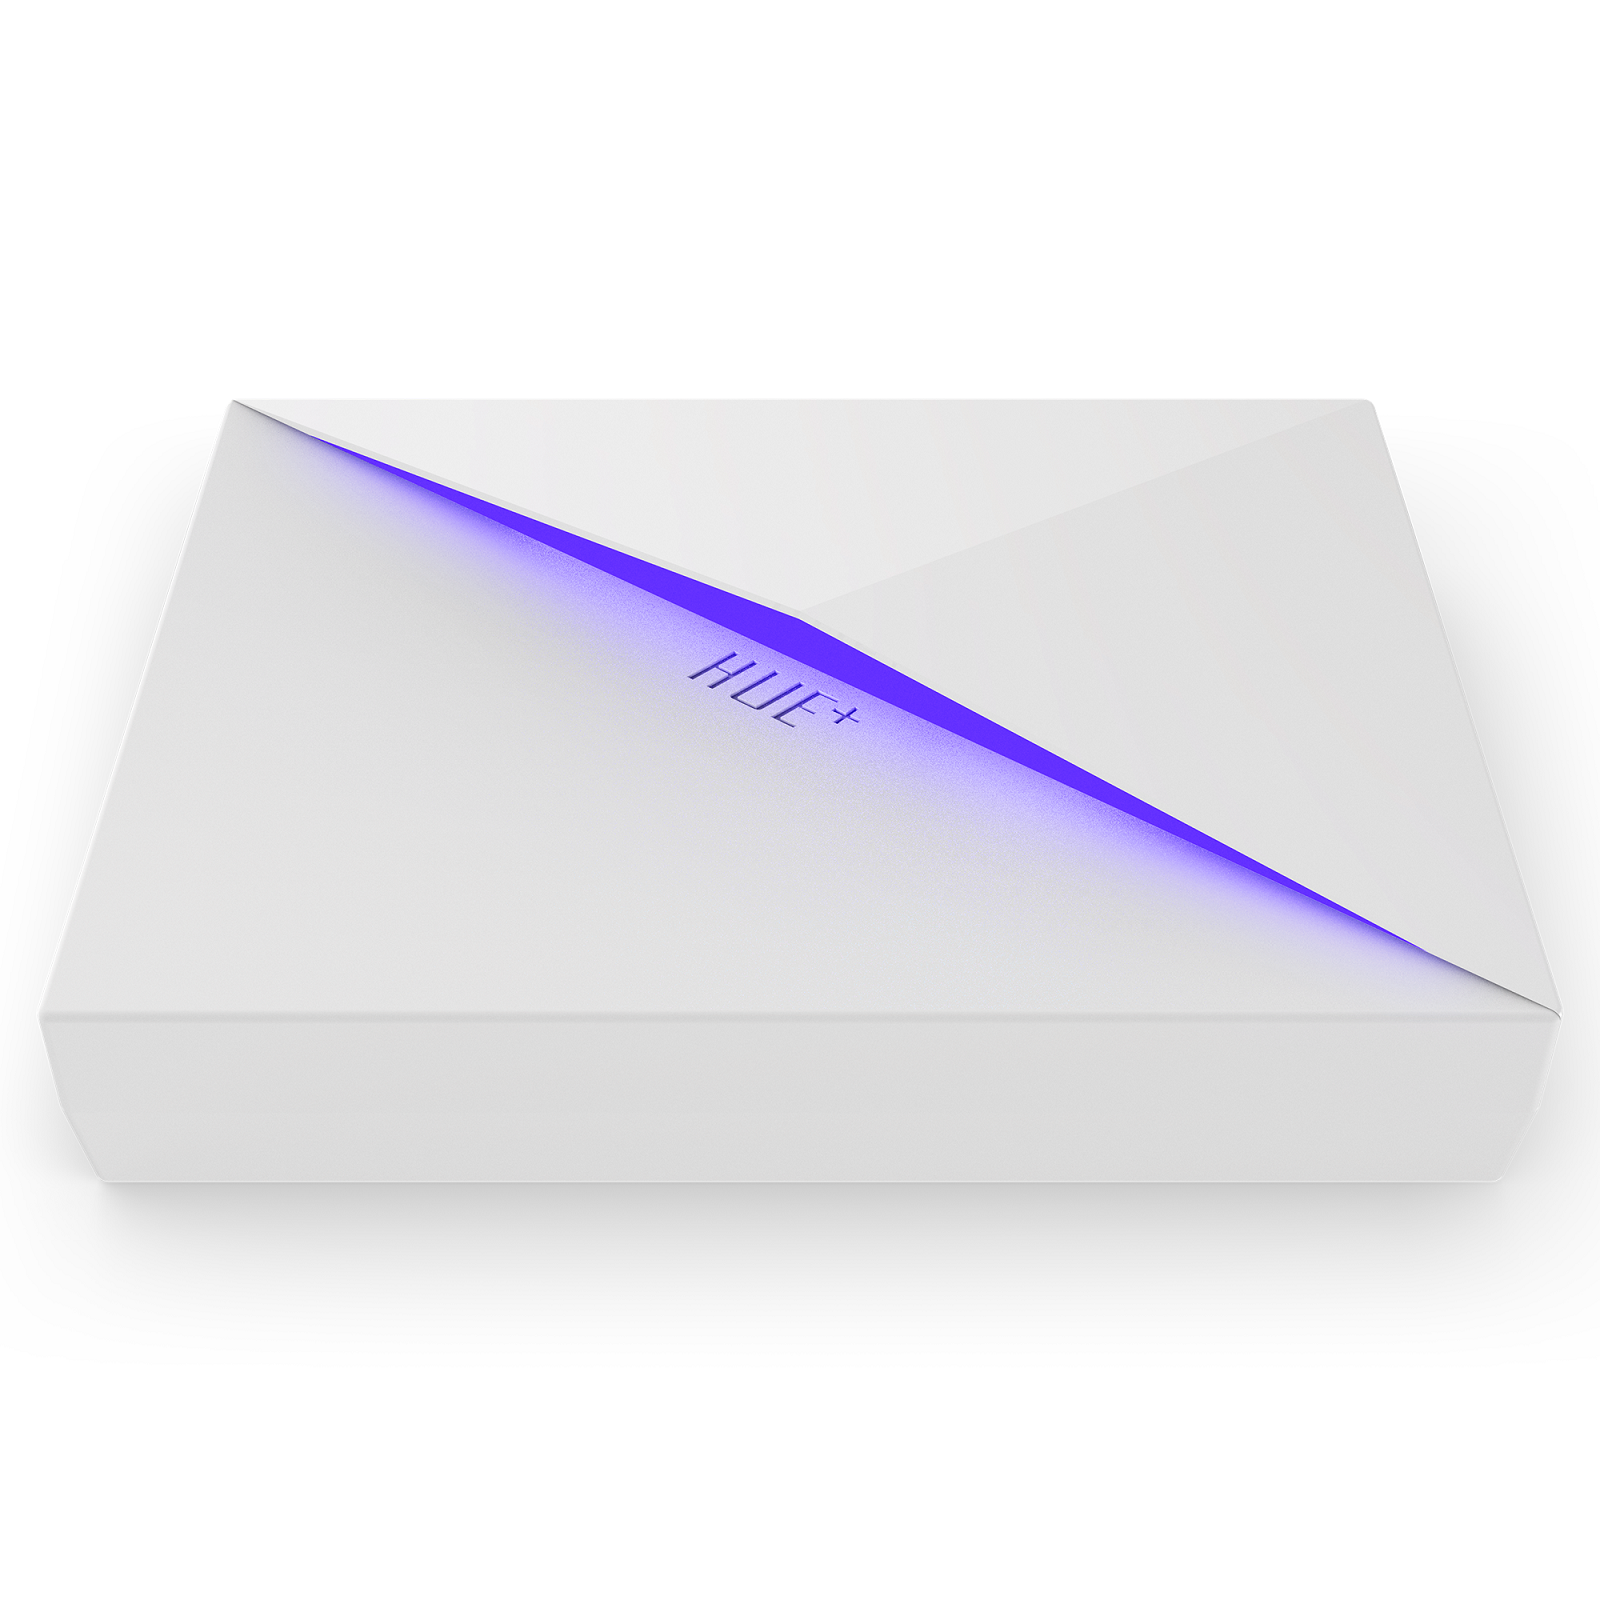 Nzxt Hue Rgb Color Changing Led Controller White